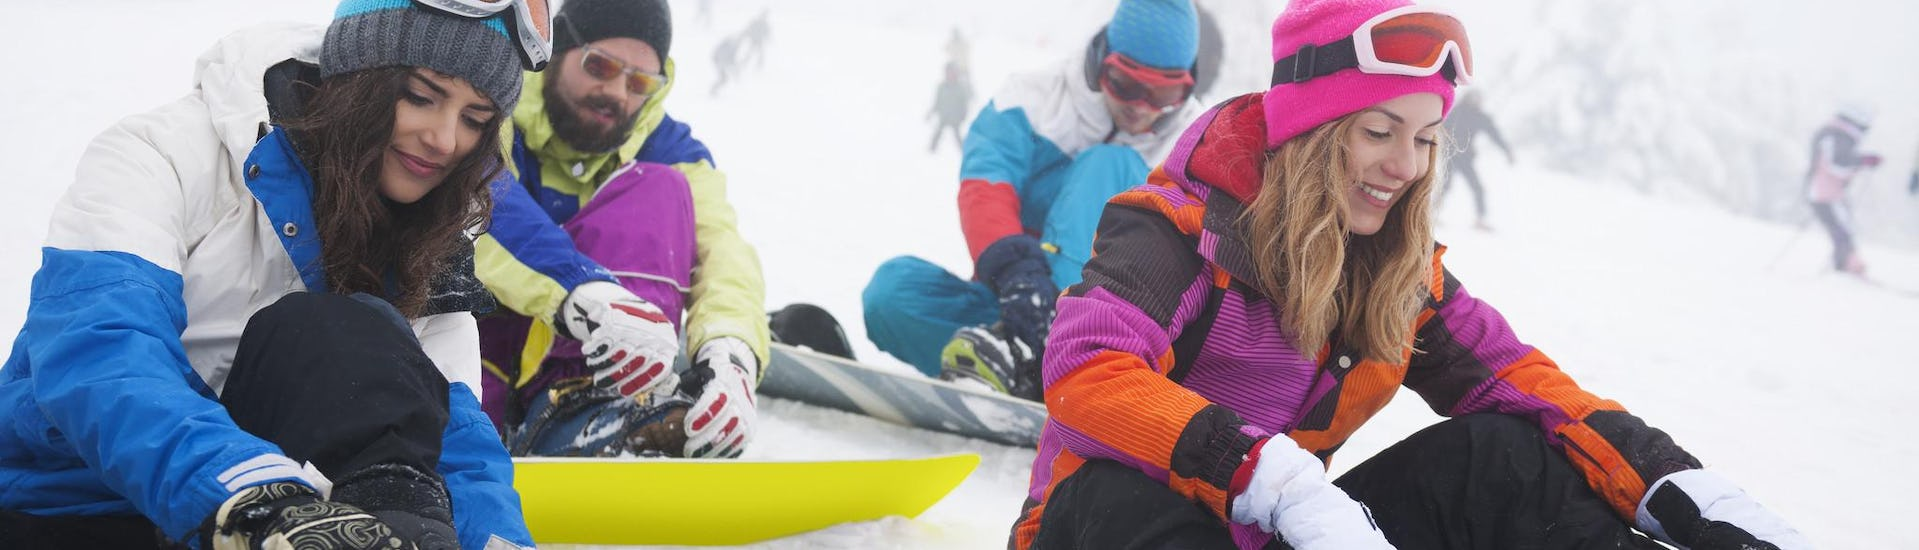 Snowboard Lessons - All Levels & Ages